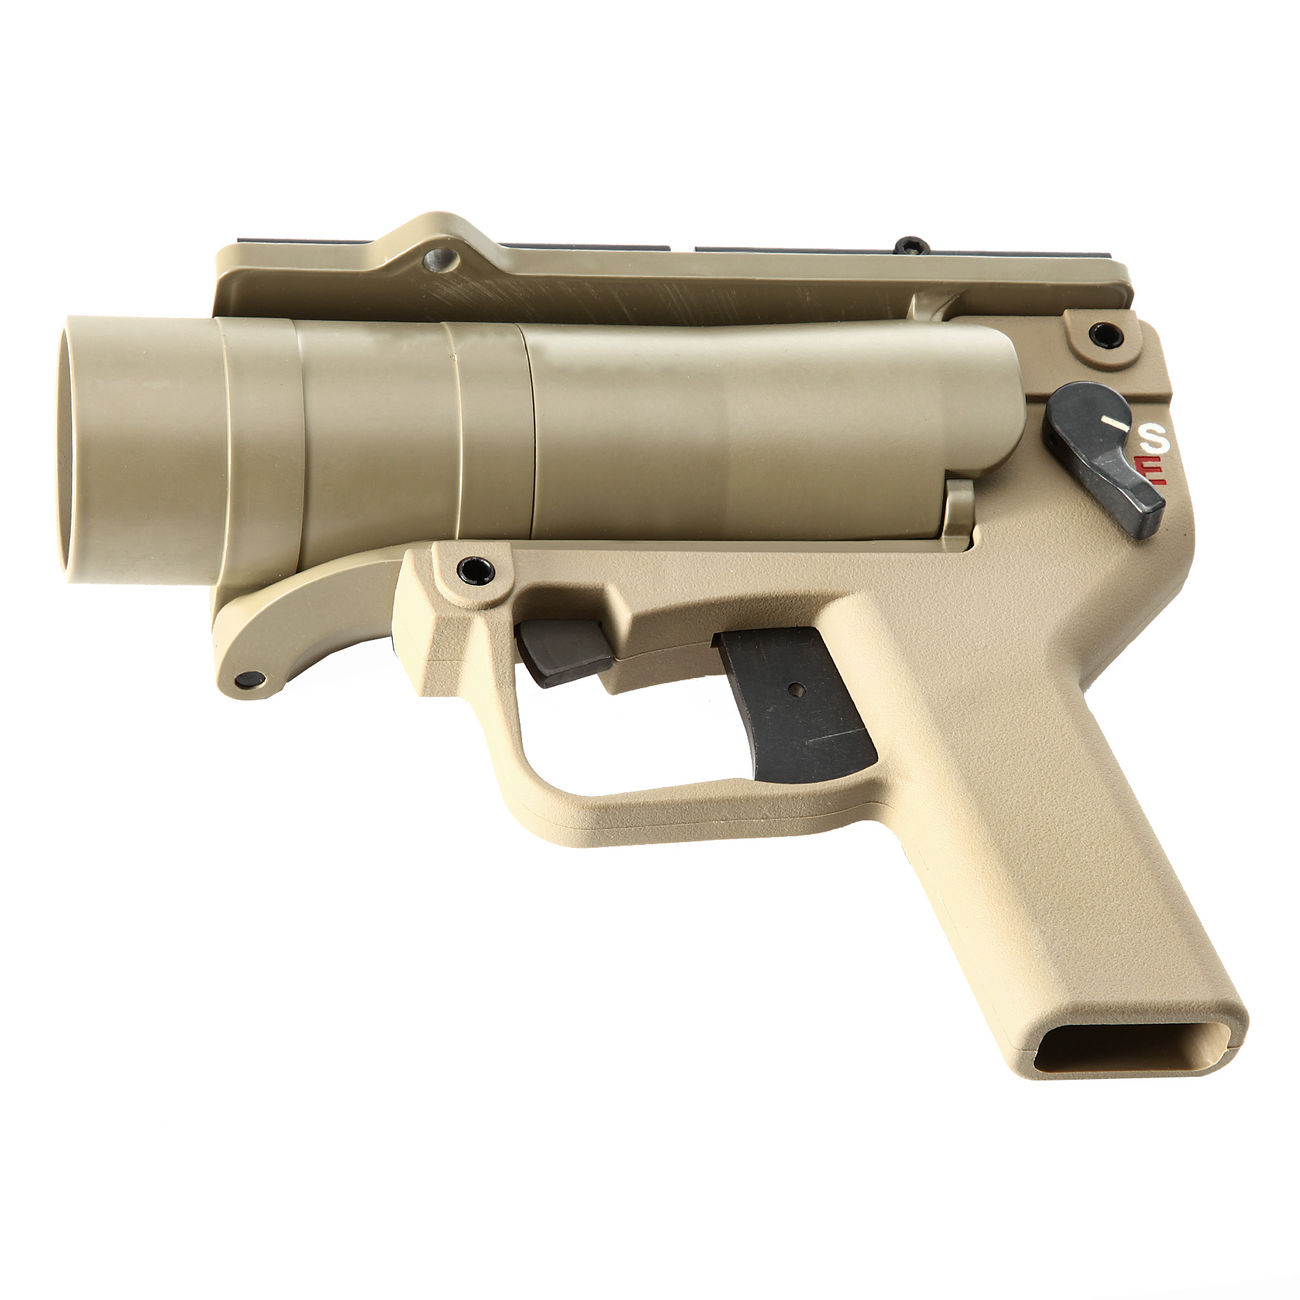 Mad Bull AGX 40mm Vollmetall Airsoft Pistolen-Launcher Tan 4